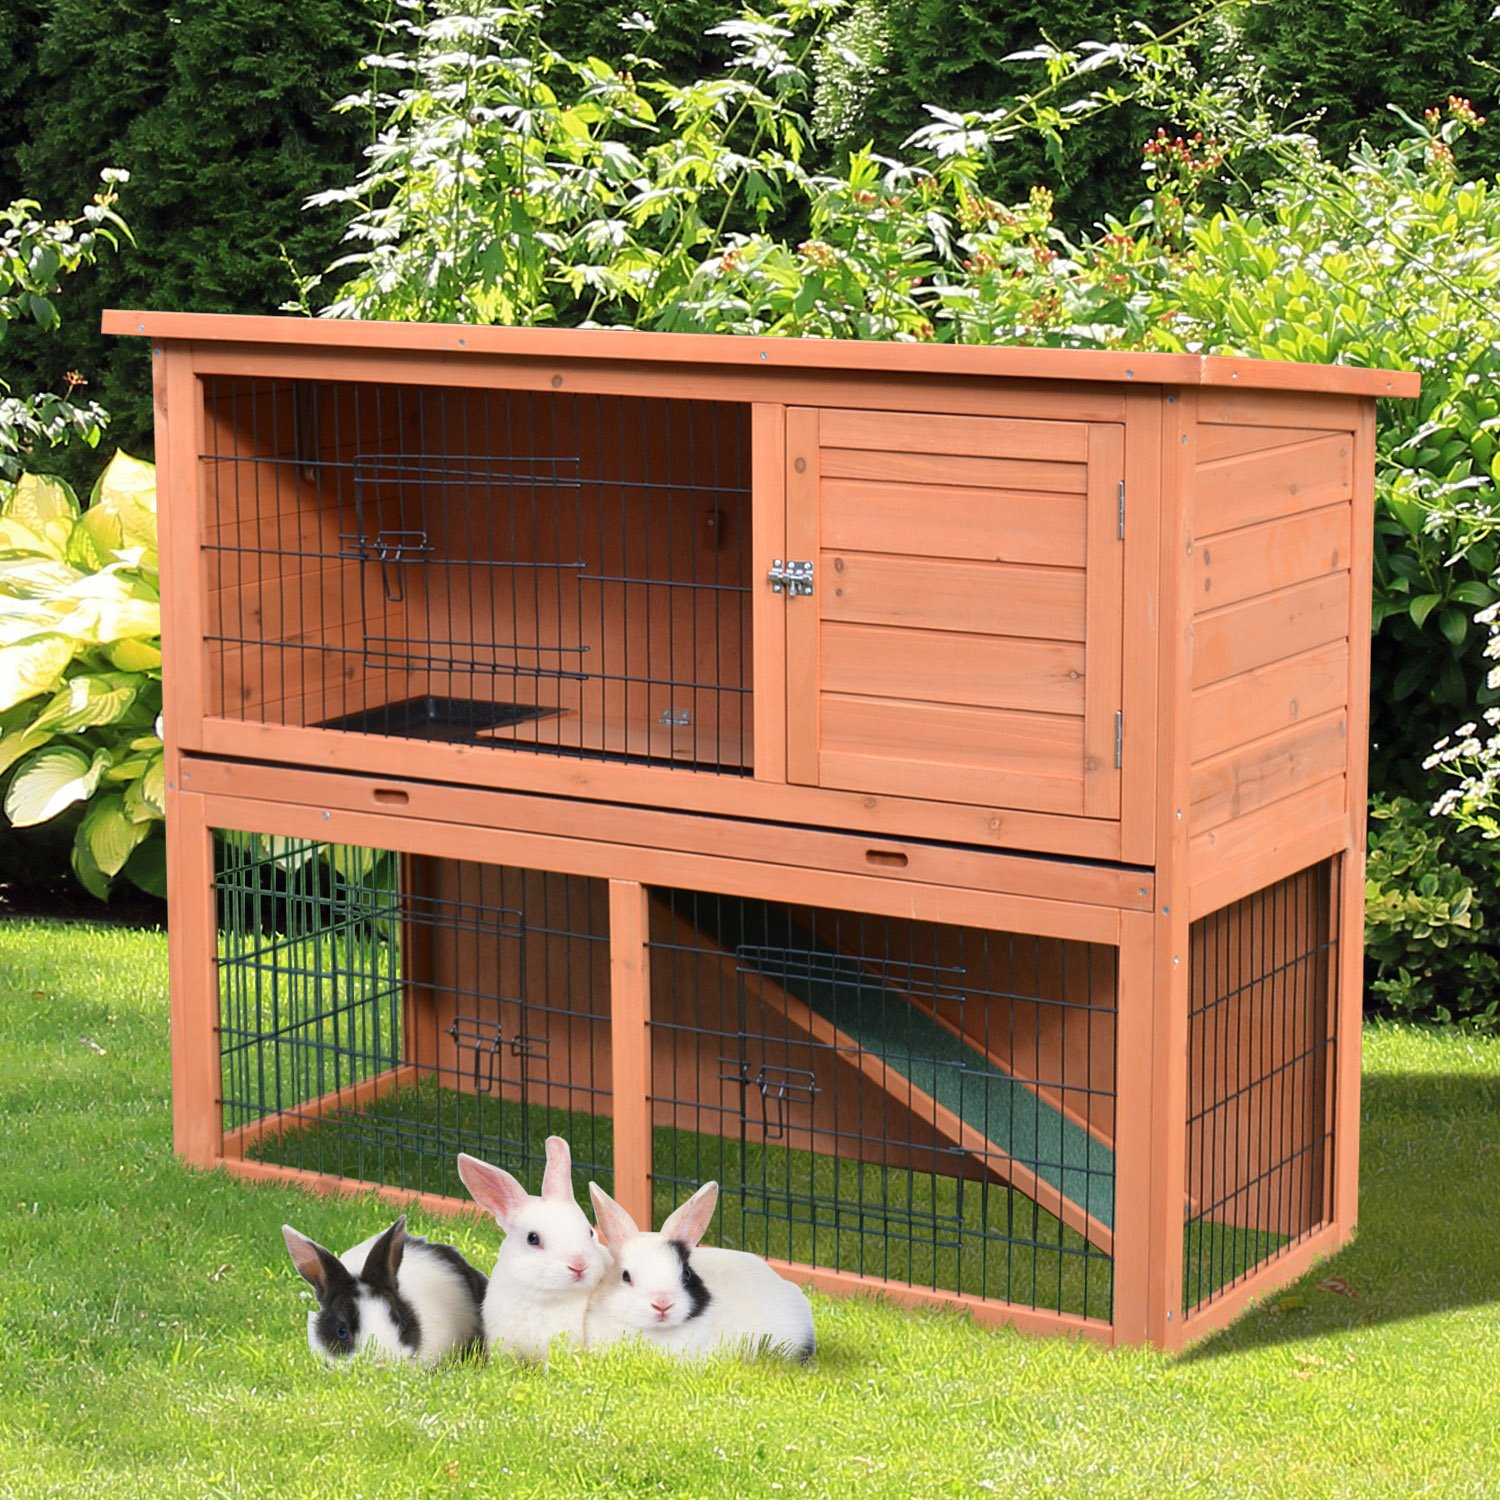 PawHut 48'' Multi Level Compact Wooden Playpen Outdoor Rabbit Small Animal Pet Cage With Enclosed Run by PawHut (Image #2)